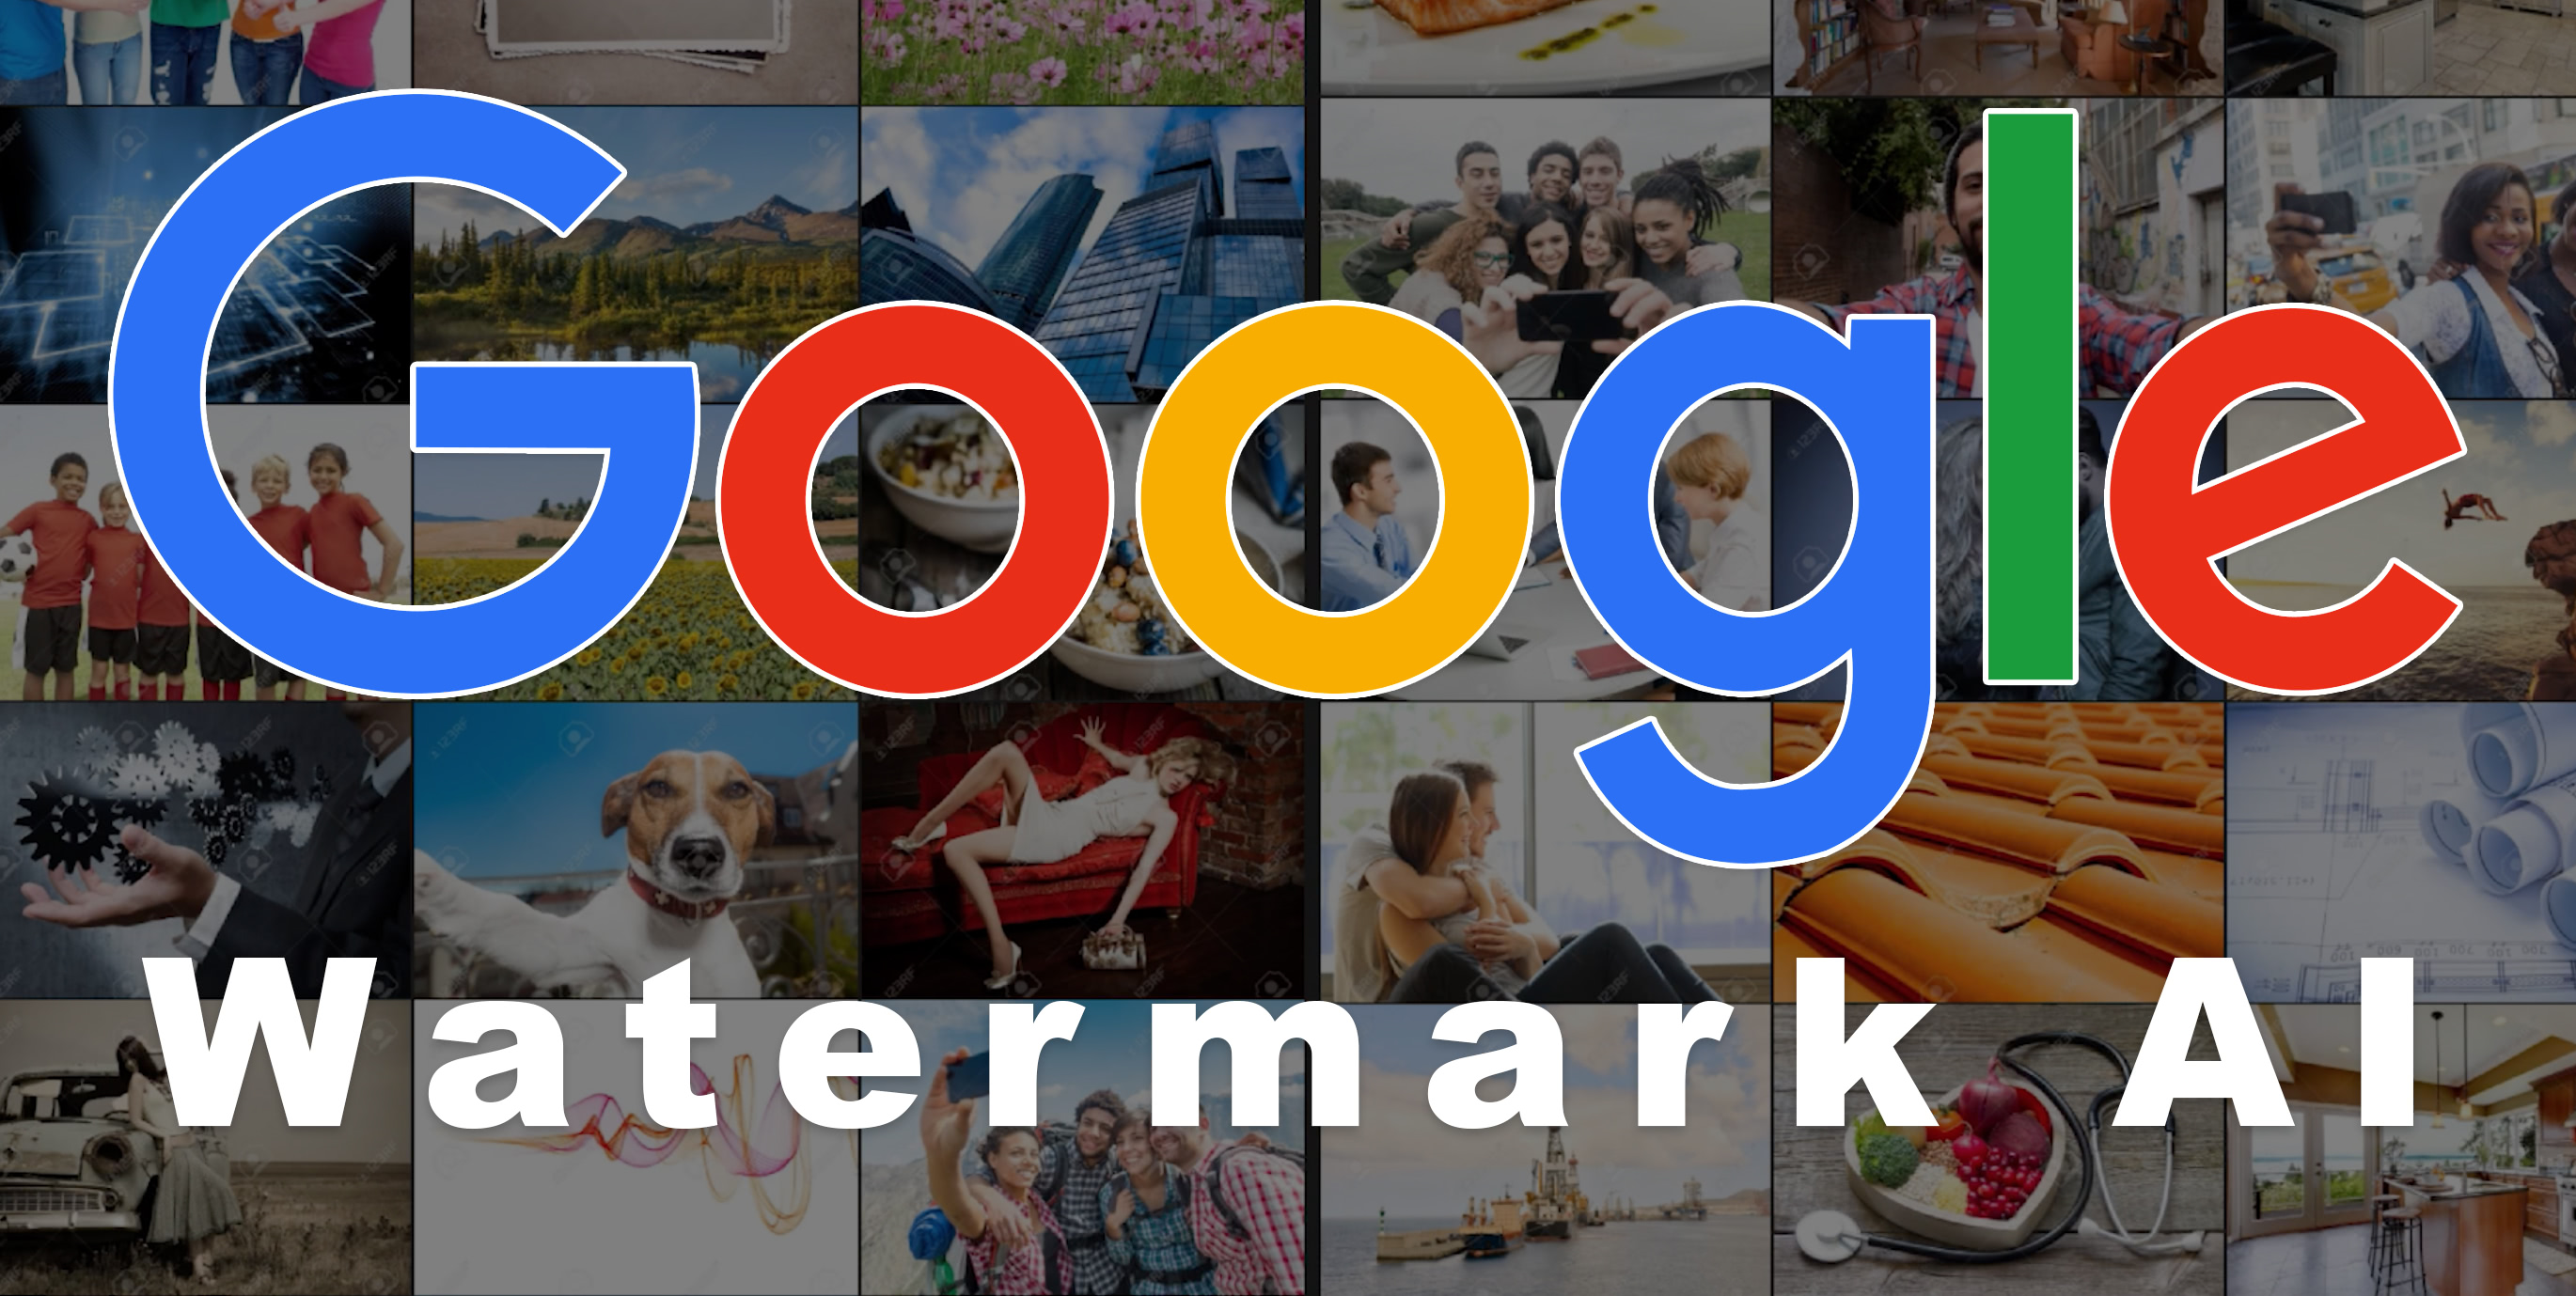 Watermarks easily removed by Google AI